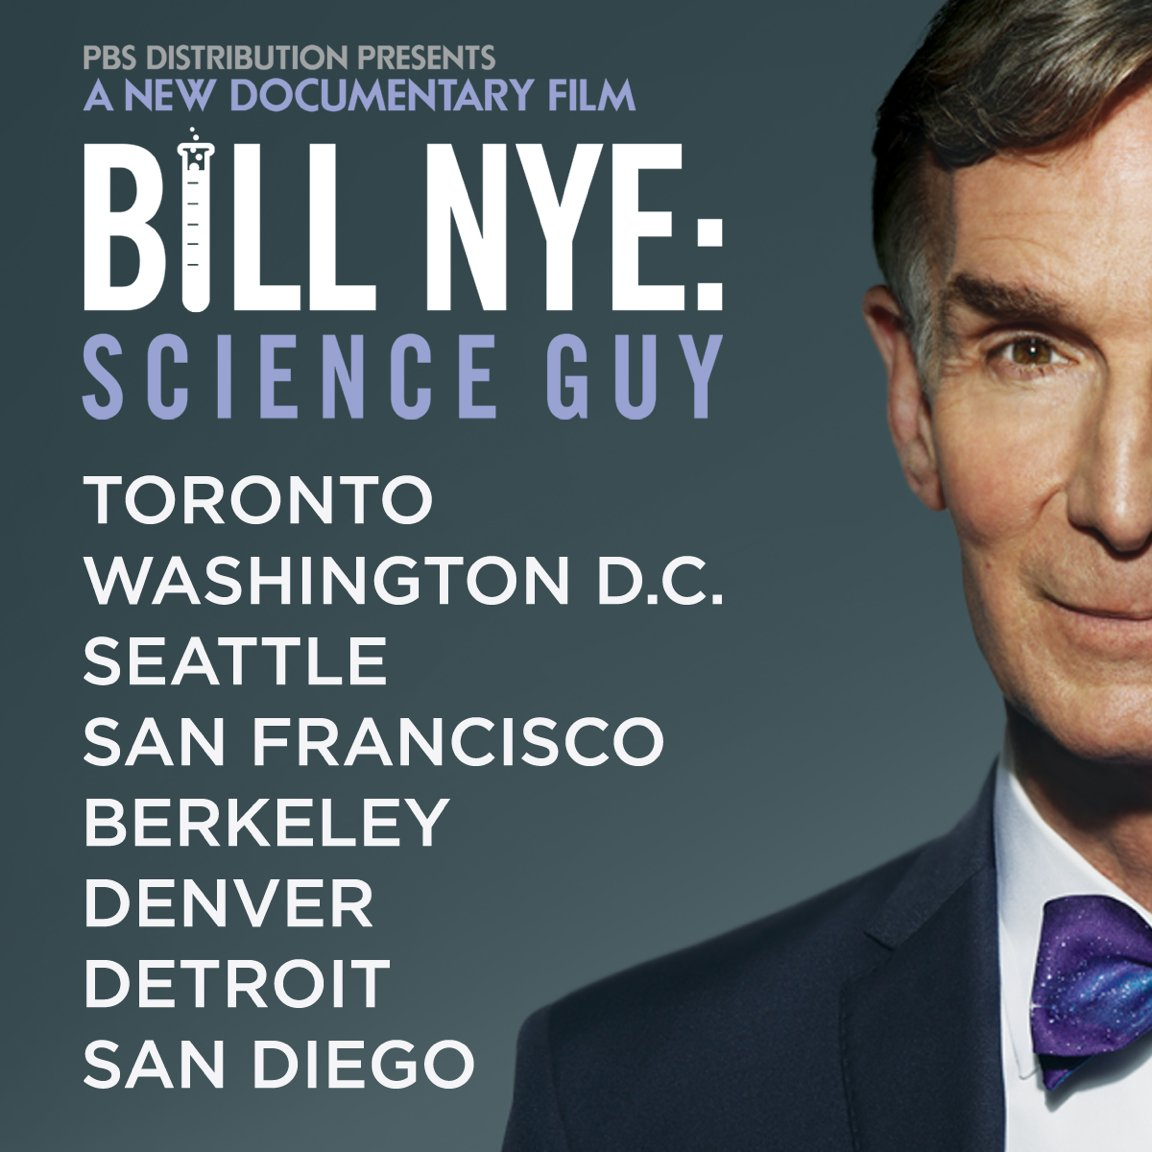 test Twitter Media - The @billnyefilm is screening in new cities this weekend → https://t.co/Qcy537Bint https://t.co/DfRhfV9cAL